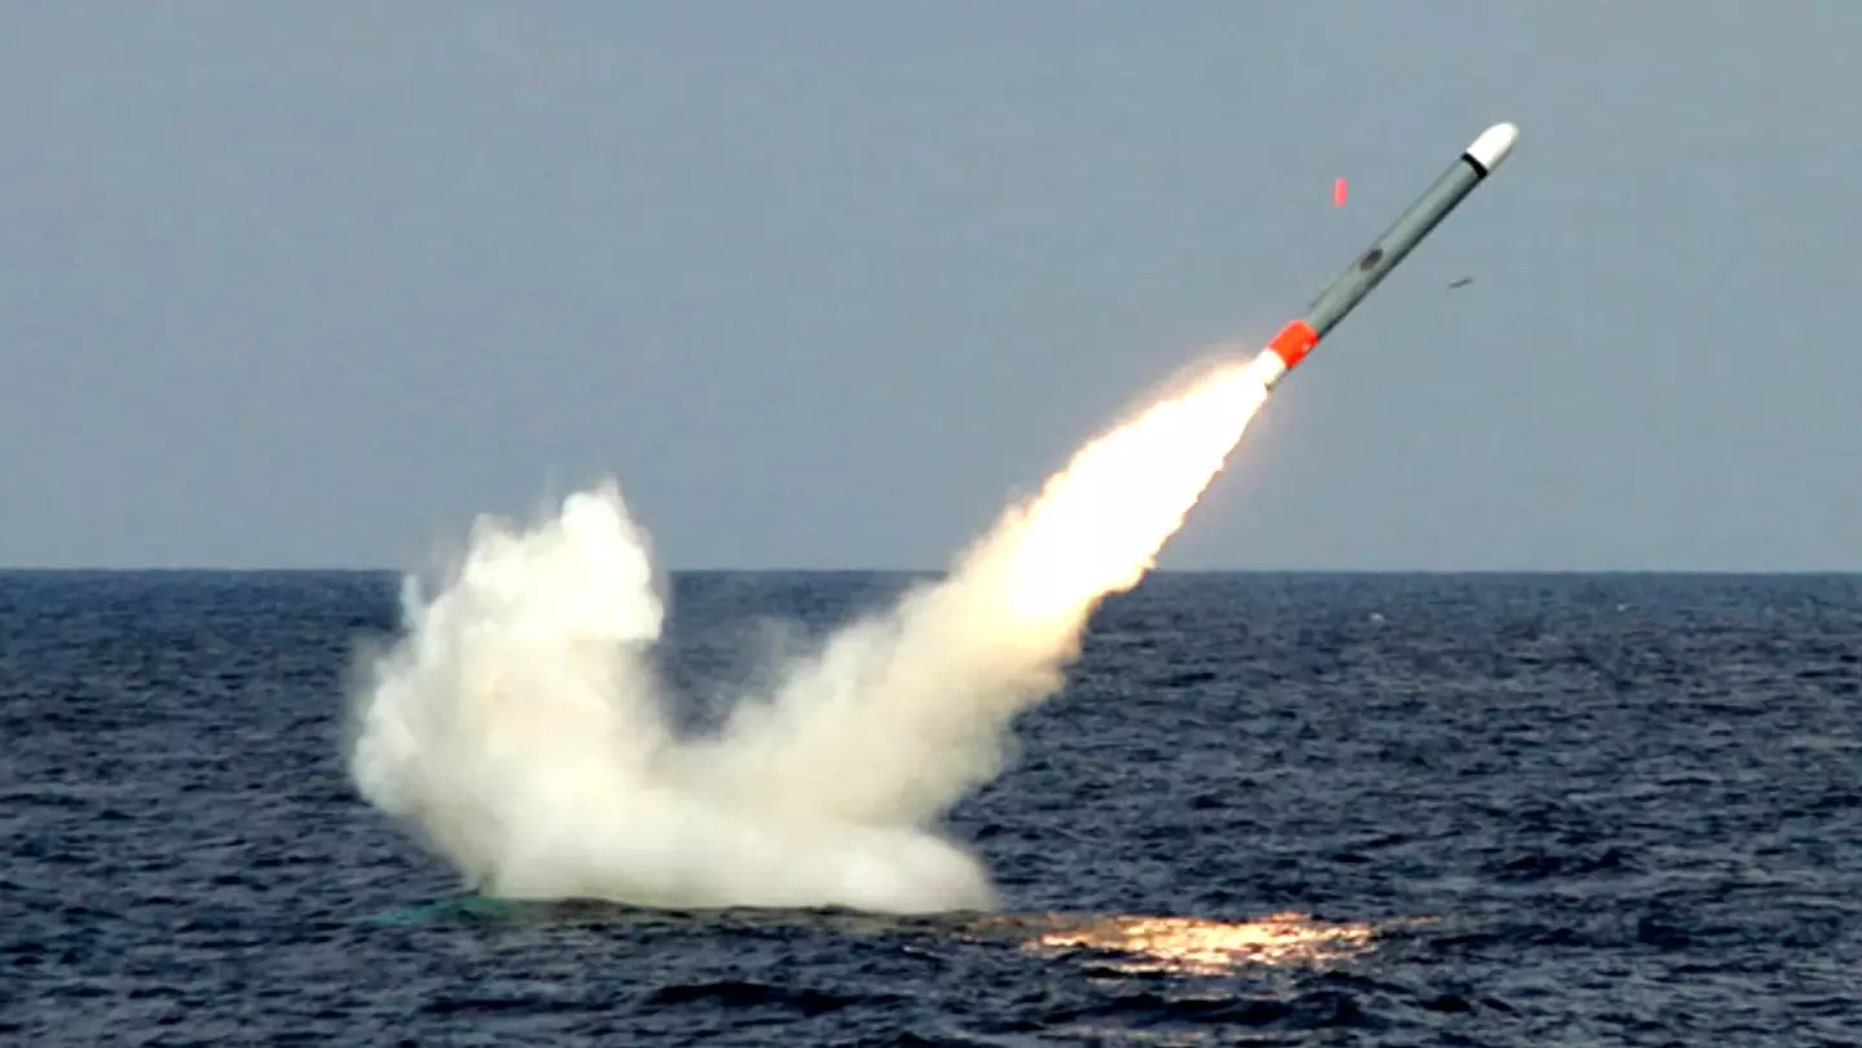 Tomahawk Cruise Missile being fired.